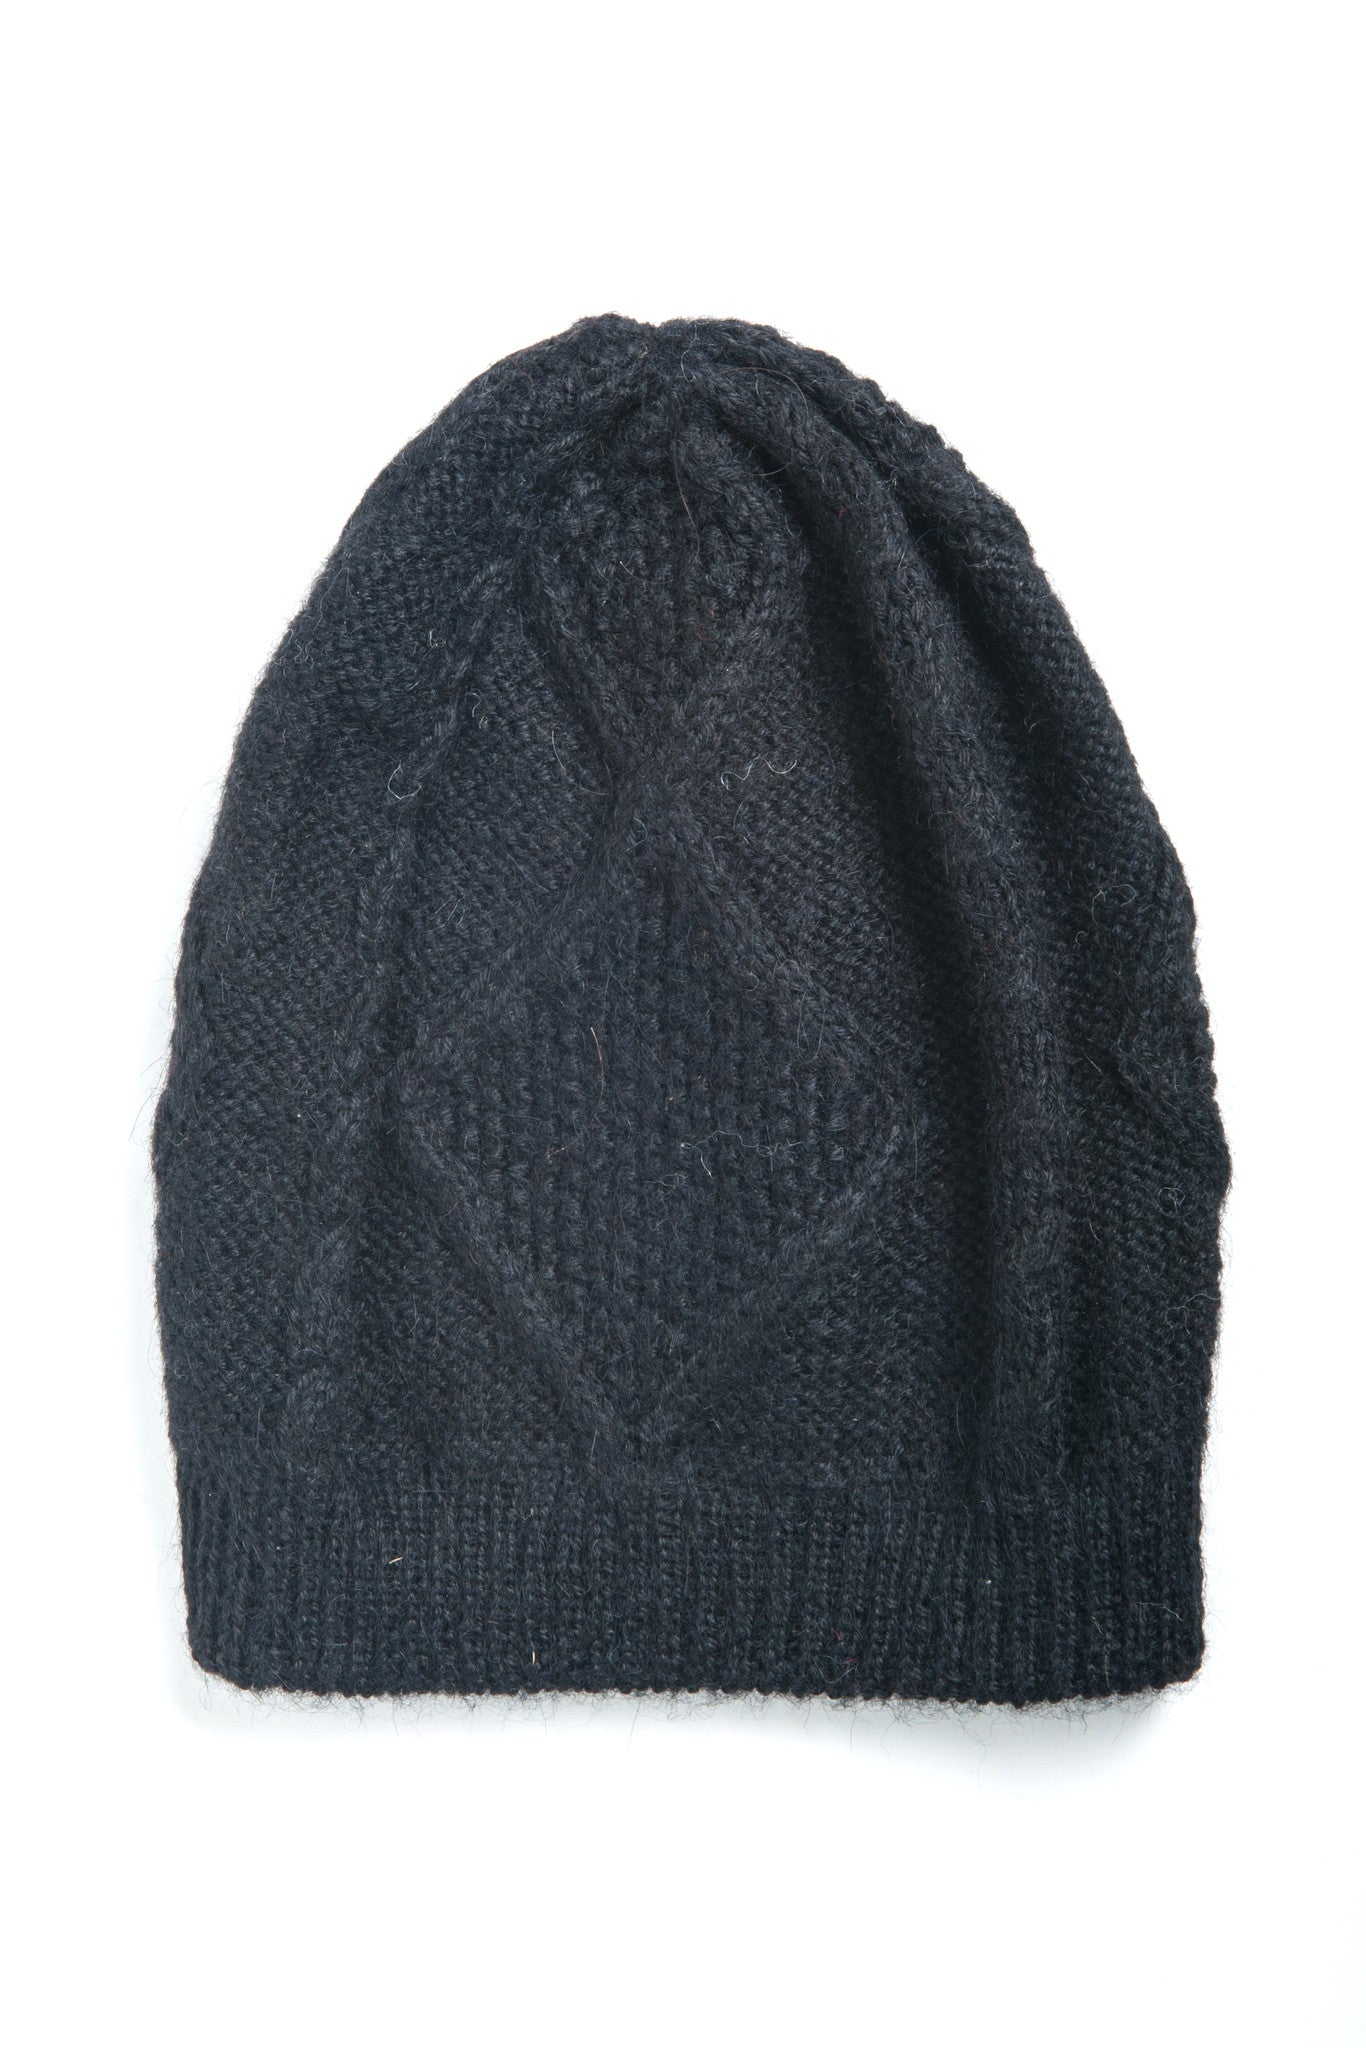 Fair Trade Alpaca Gabriela Hat Black